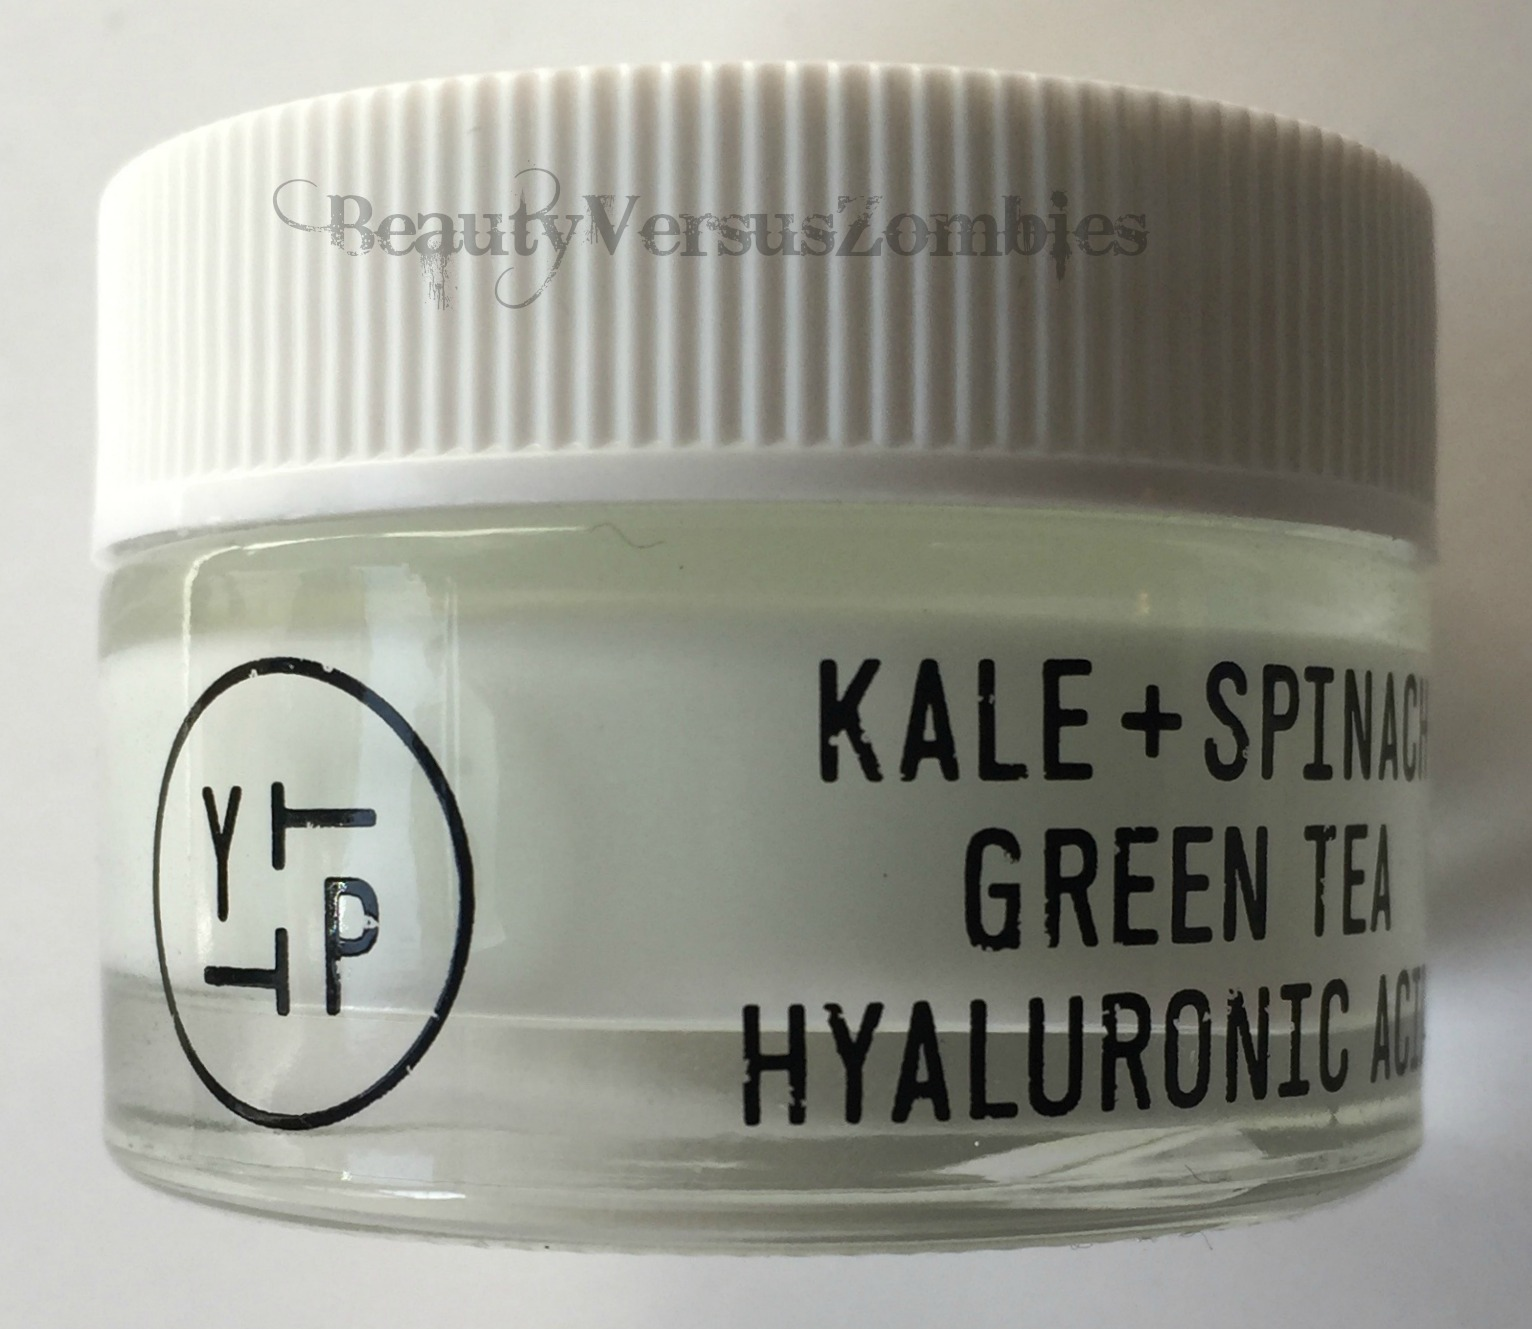 Superfood Cleanser by Youth to the People #13